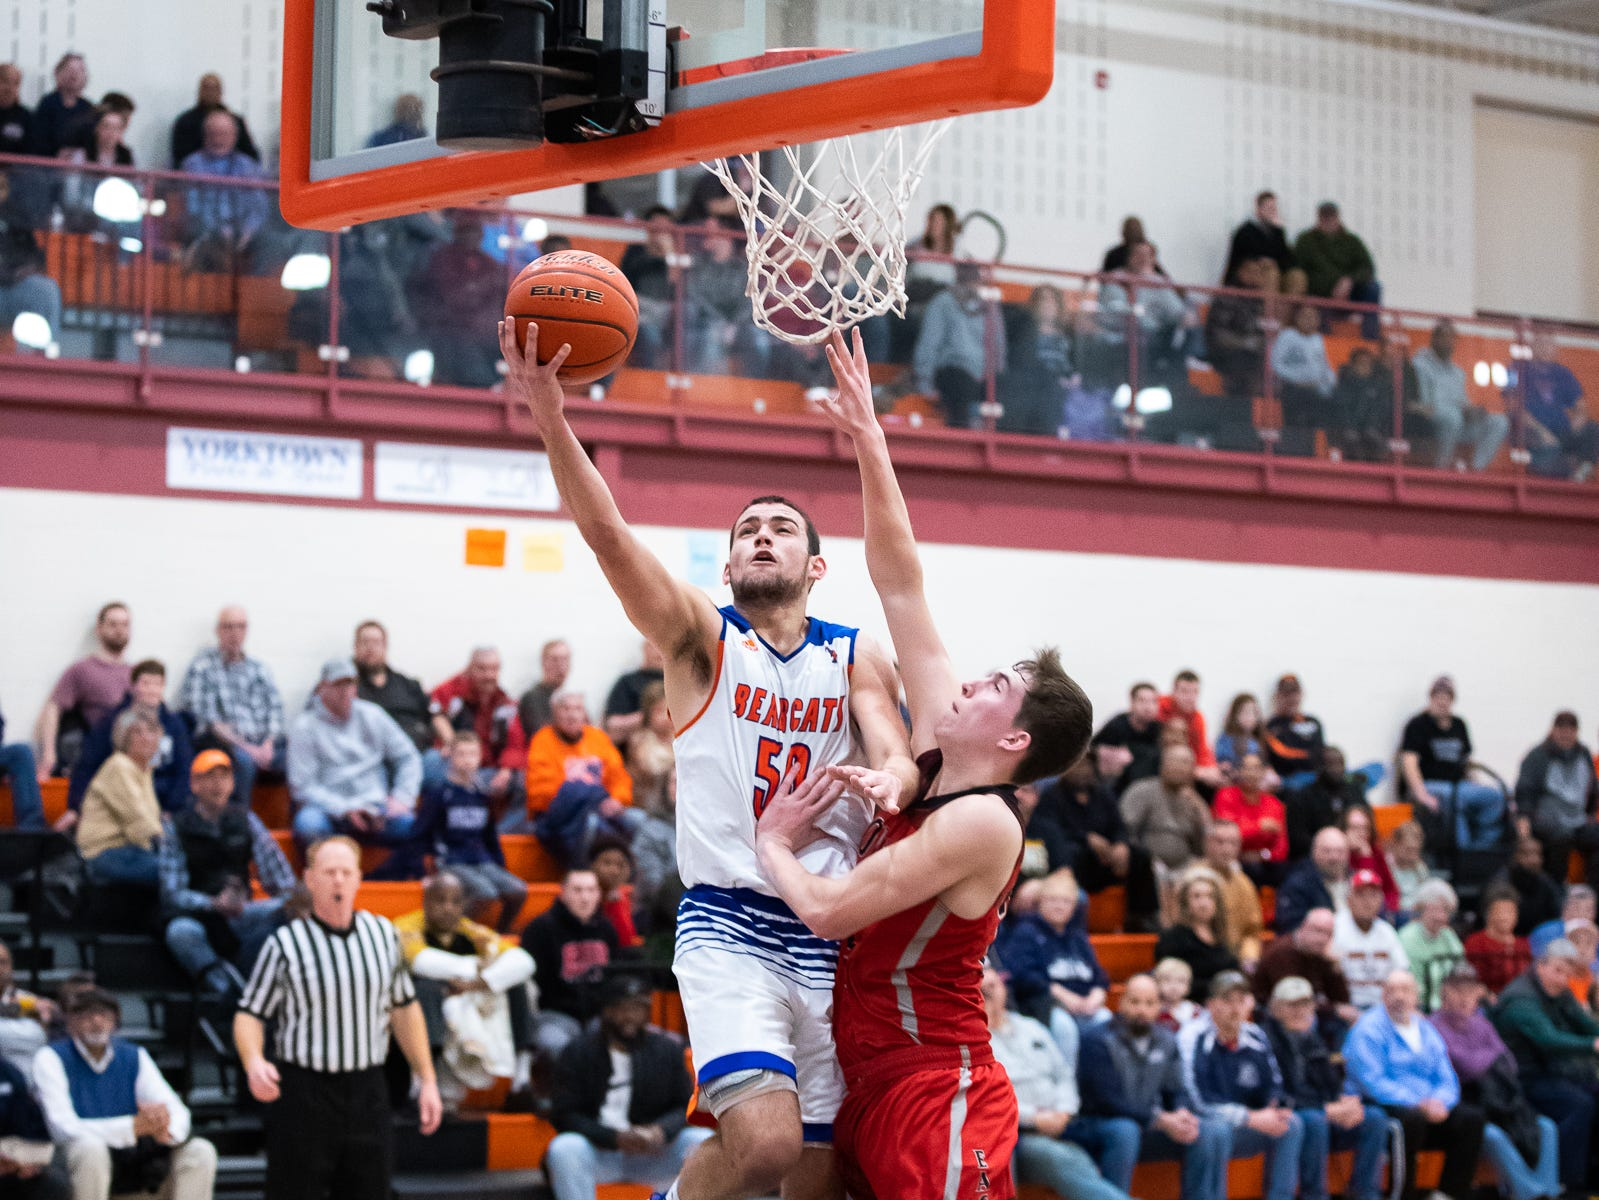 York High's Seth Bernstein (50) shoots a layup during the second half of a YAIAA quarterfinal between York High and Dover, Saturday, Feb. 9, 2019, at Central York High School. The York High Bearcats defeated the Dover Eagles 75-53.